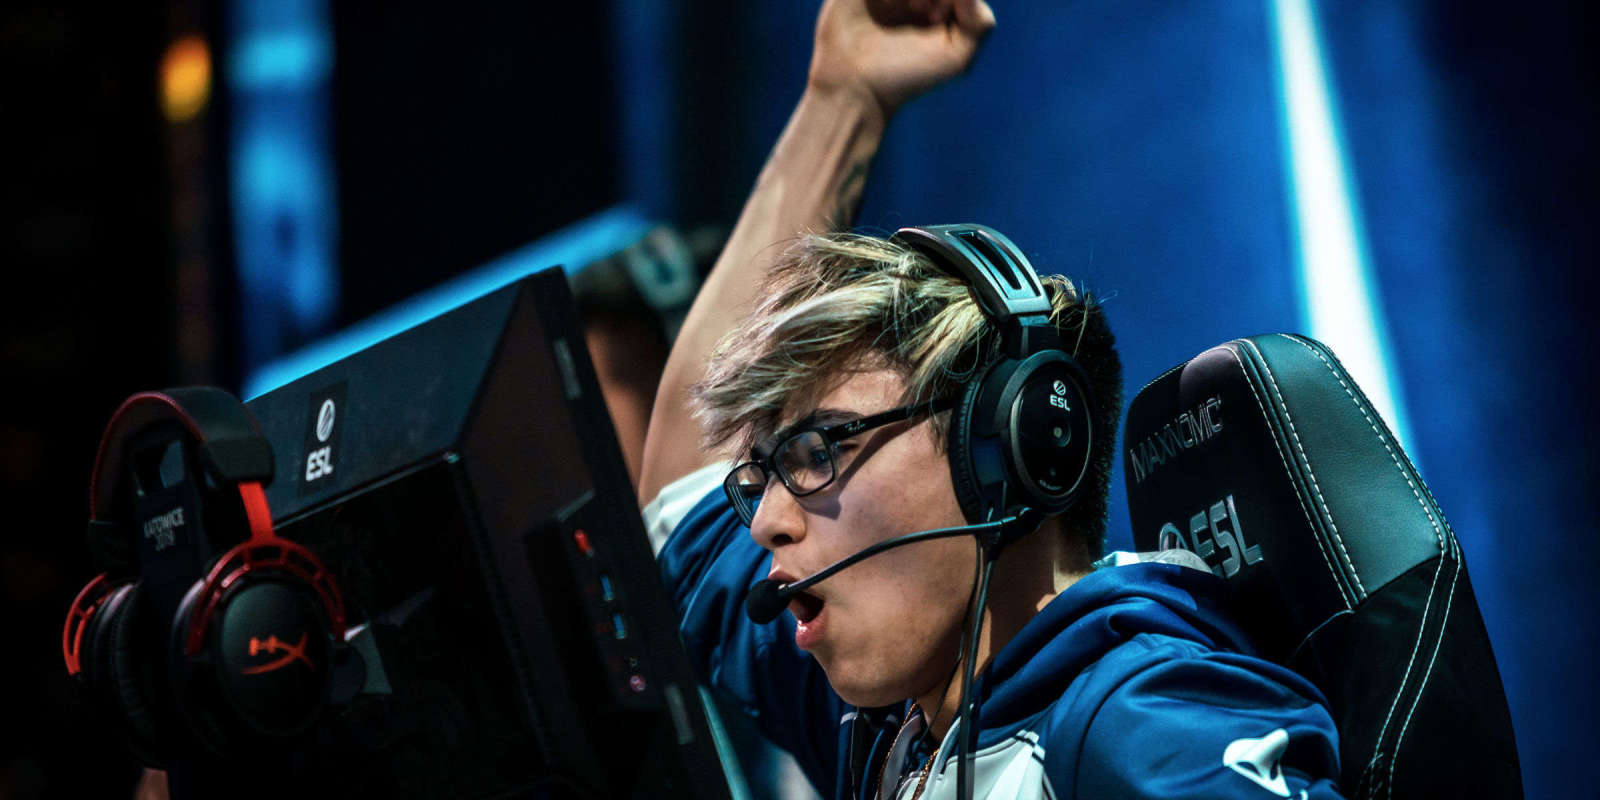 Photos of Team Liquid's Counter-Strike Global Offensive team competing at the CSGO Major in Katowice Poland. The team placed 5th-8th after being eliminated in the quarterfinals.